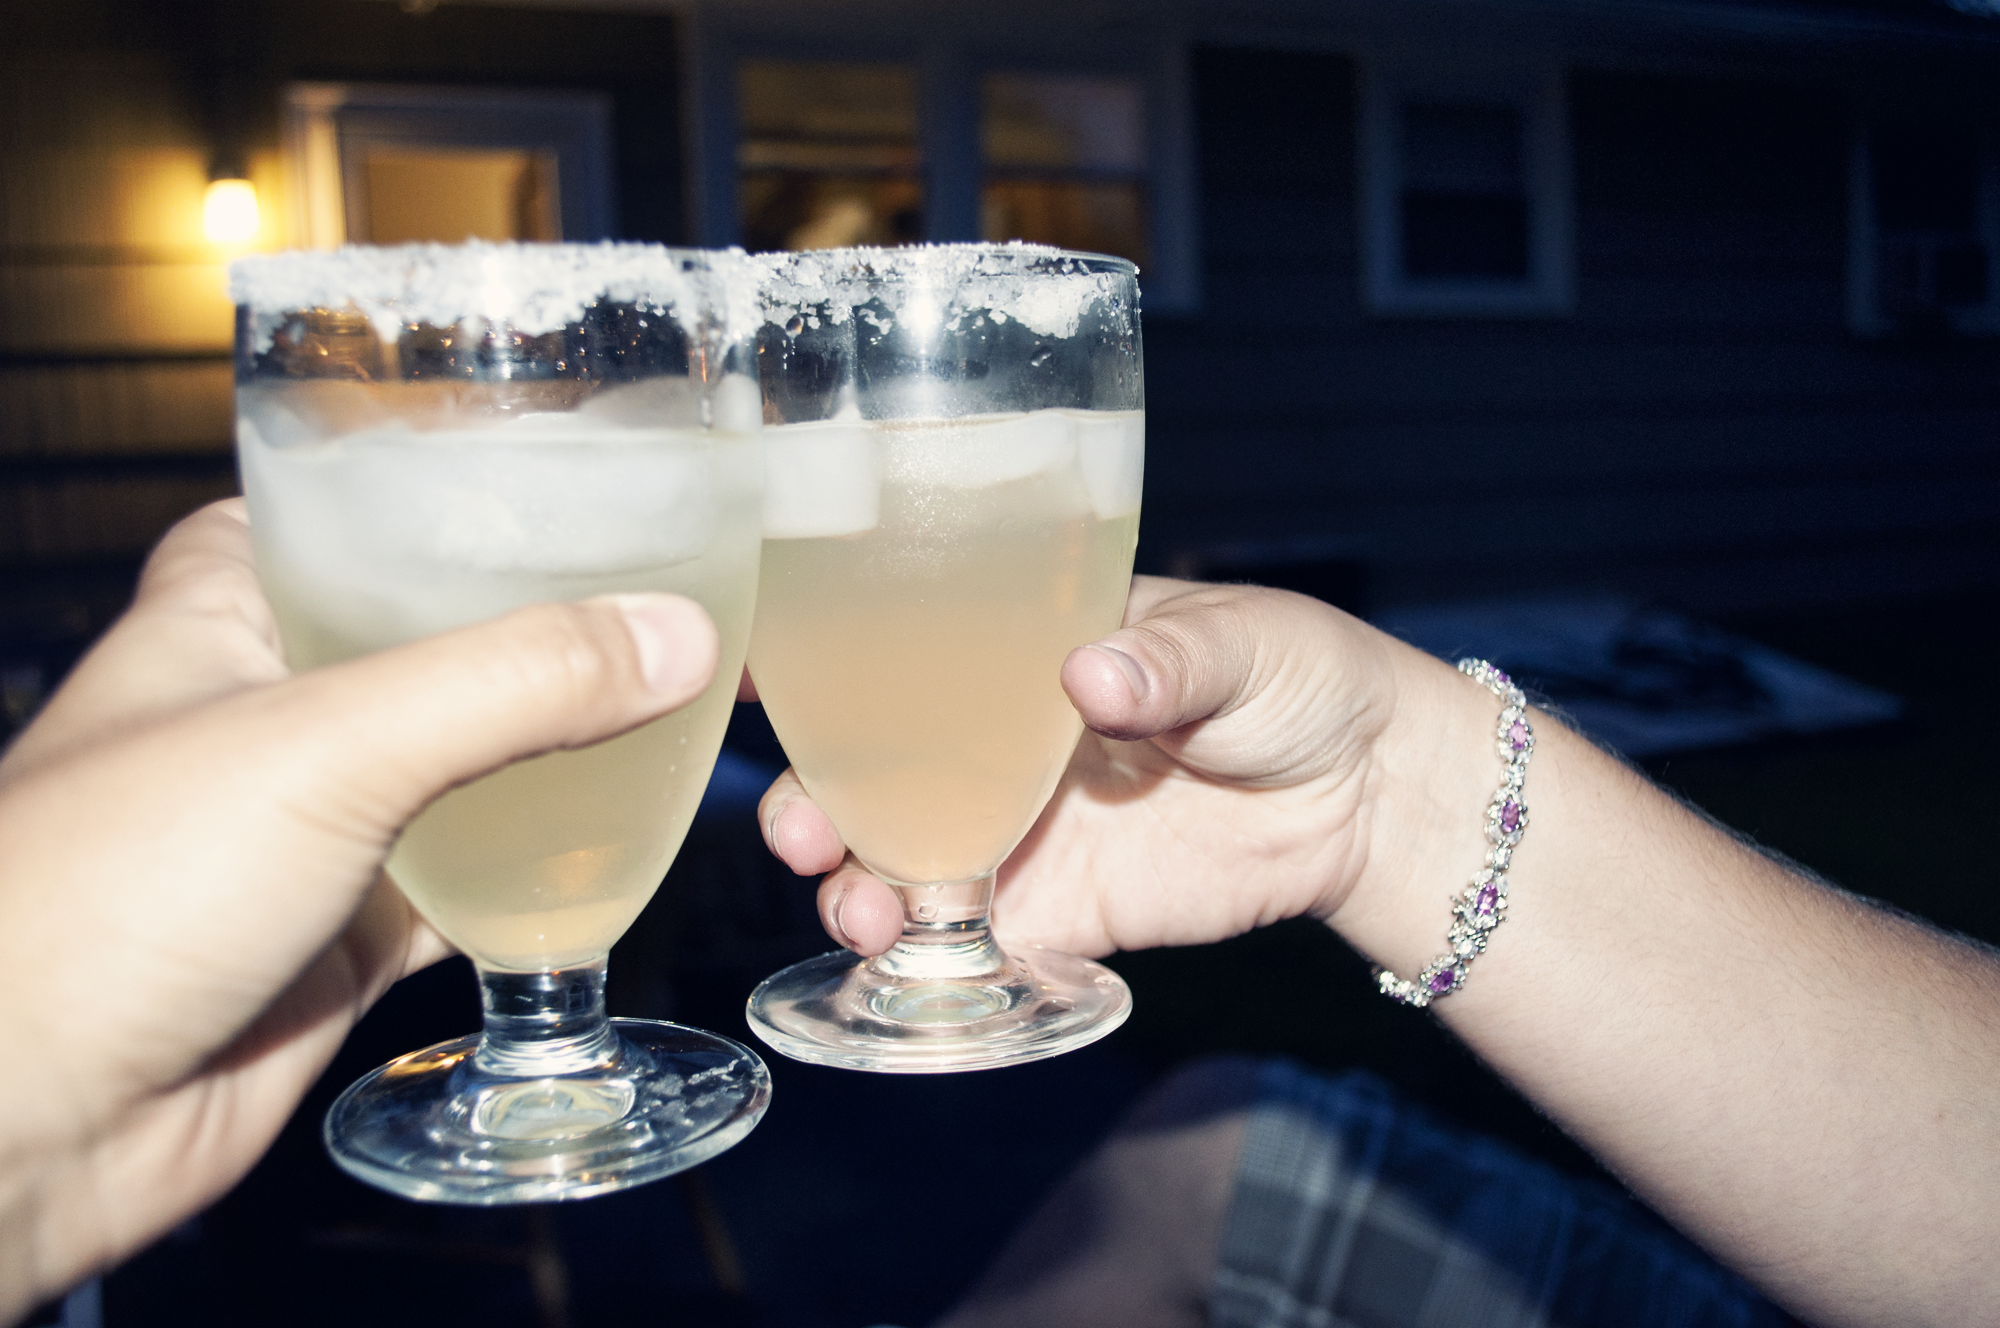 Ohio Underage Drinking Attorney